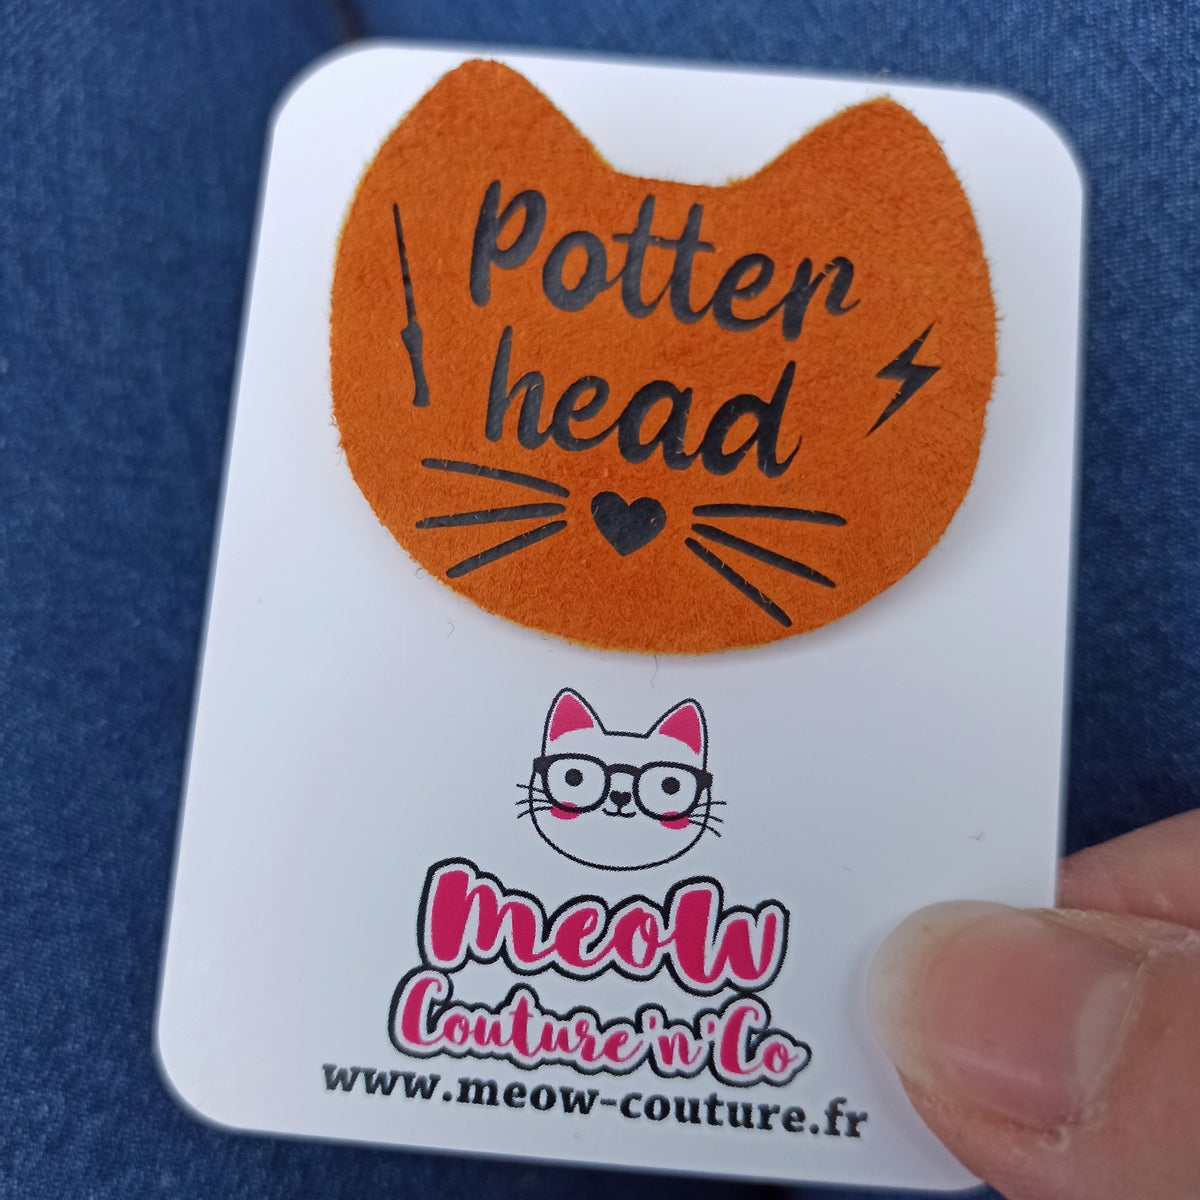 Image of Broche Potter head - Pouf.